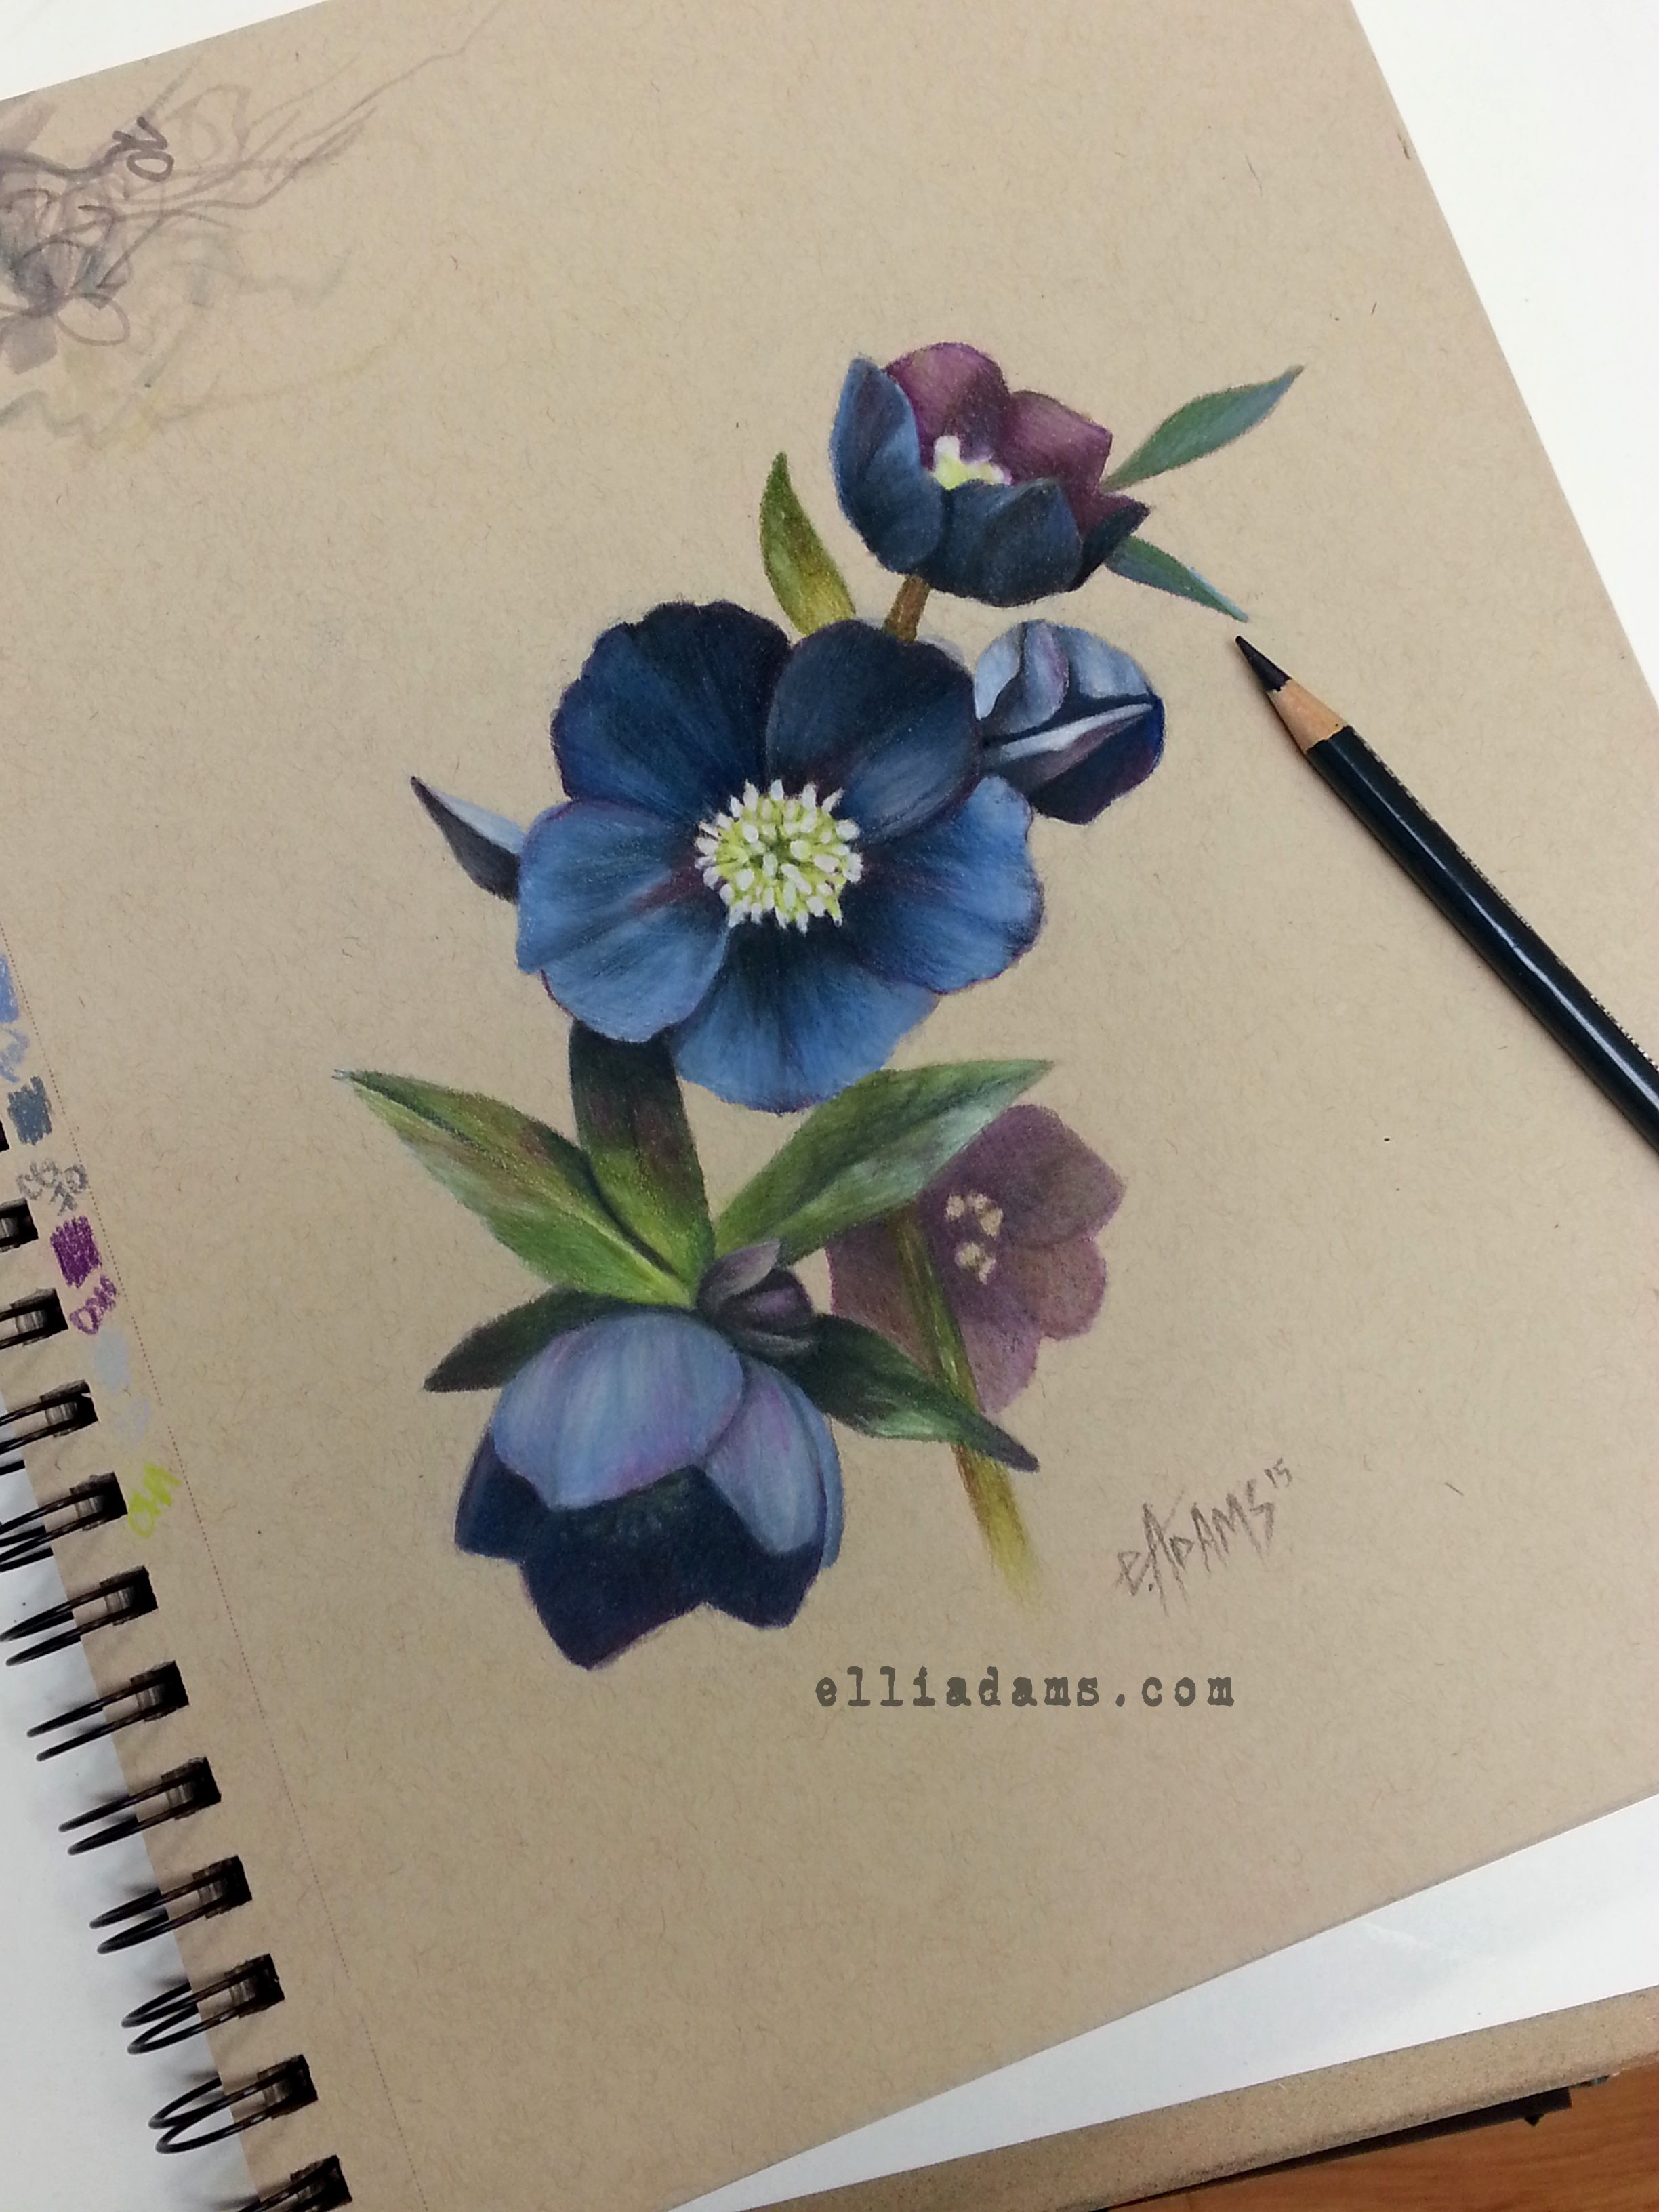 Black Hellebore Study I Did In Colored Pencil And Marker On